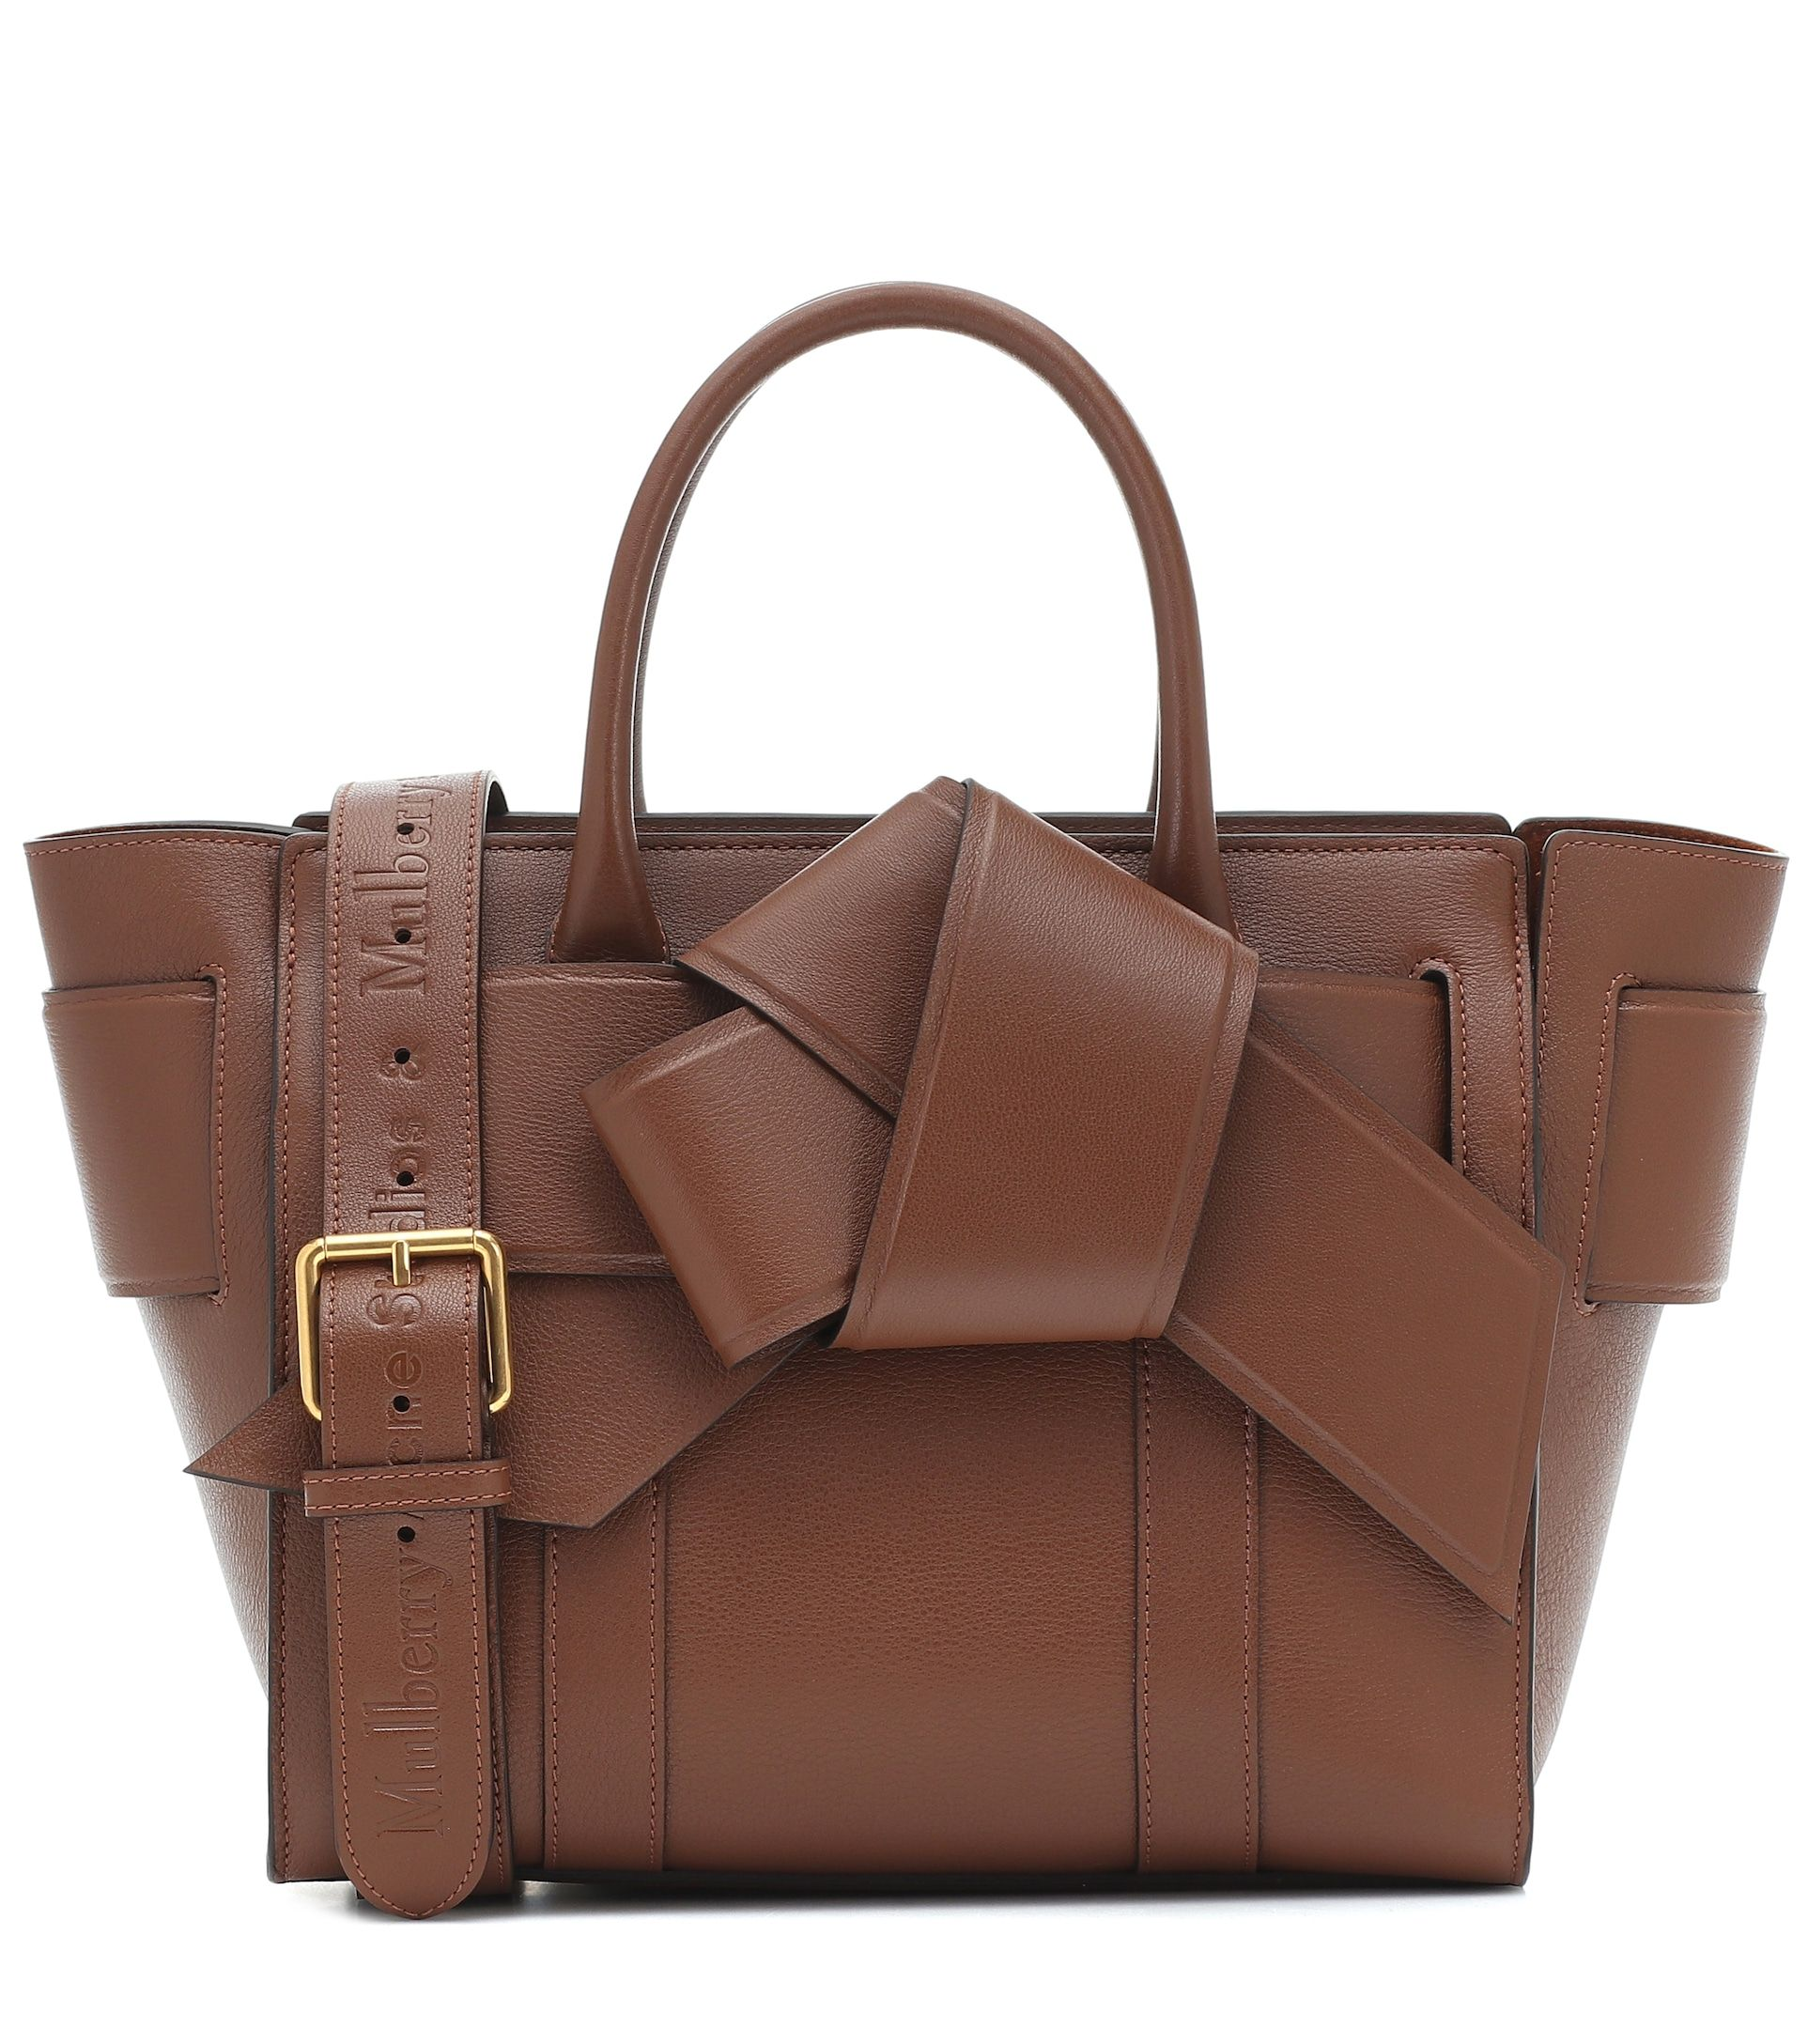 acne-studios-x-mulberry-bayswater-musubi-leather-tote-brown